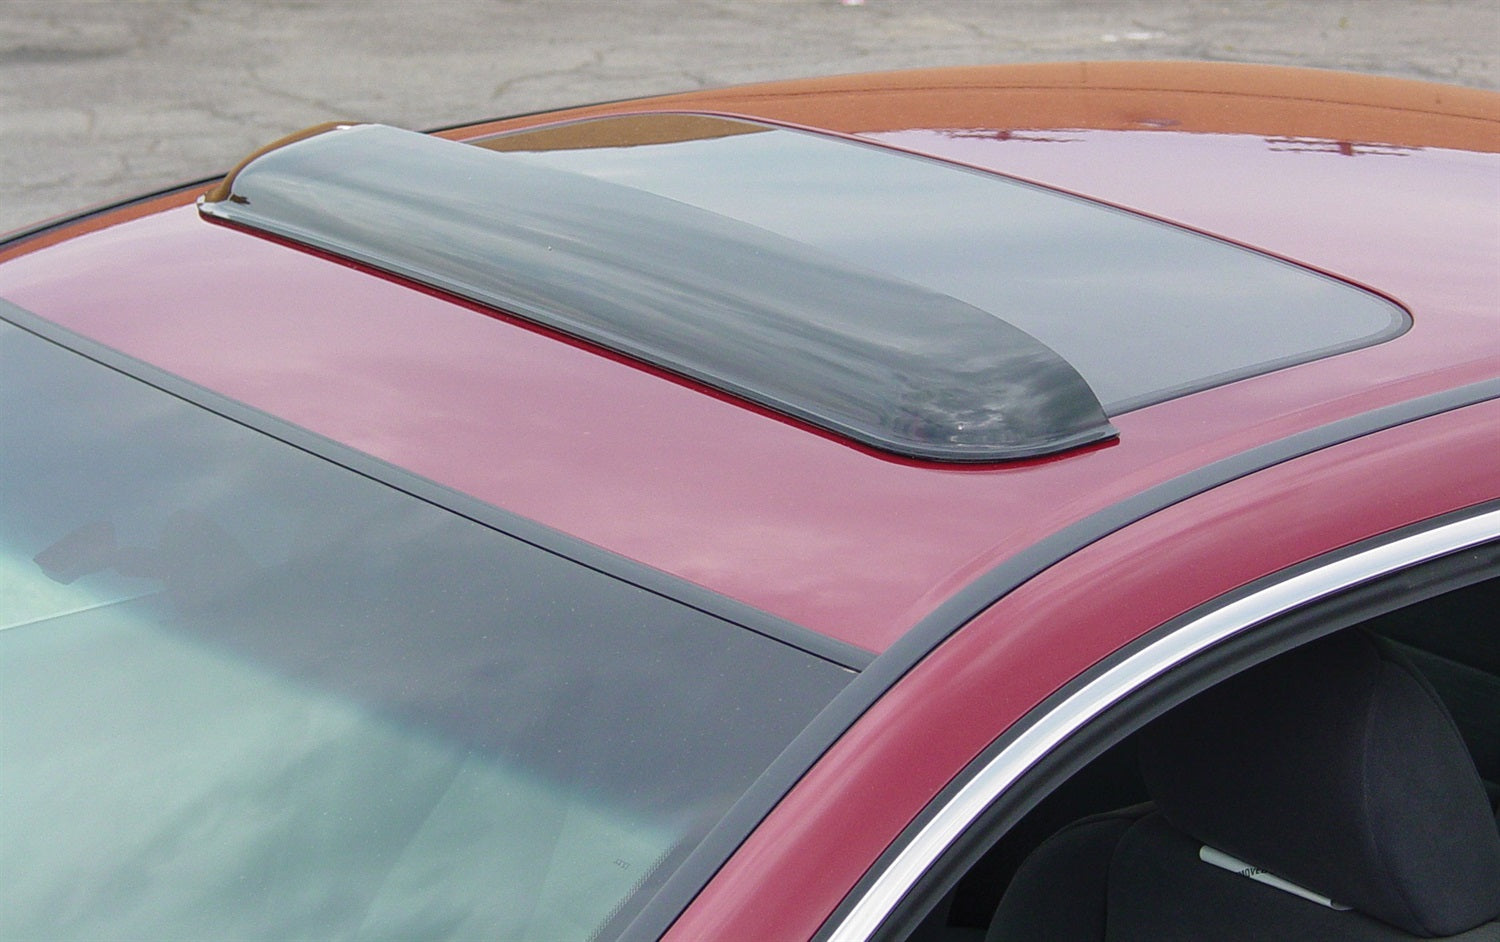 2006 Ford Escape Sunroof Wind Deflector